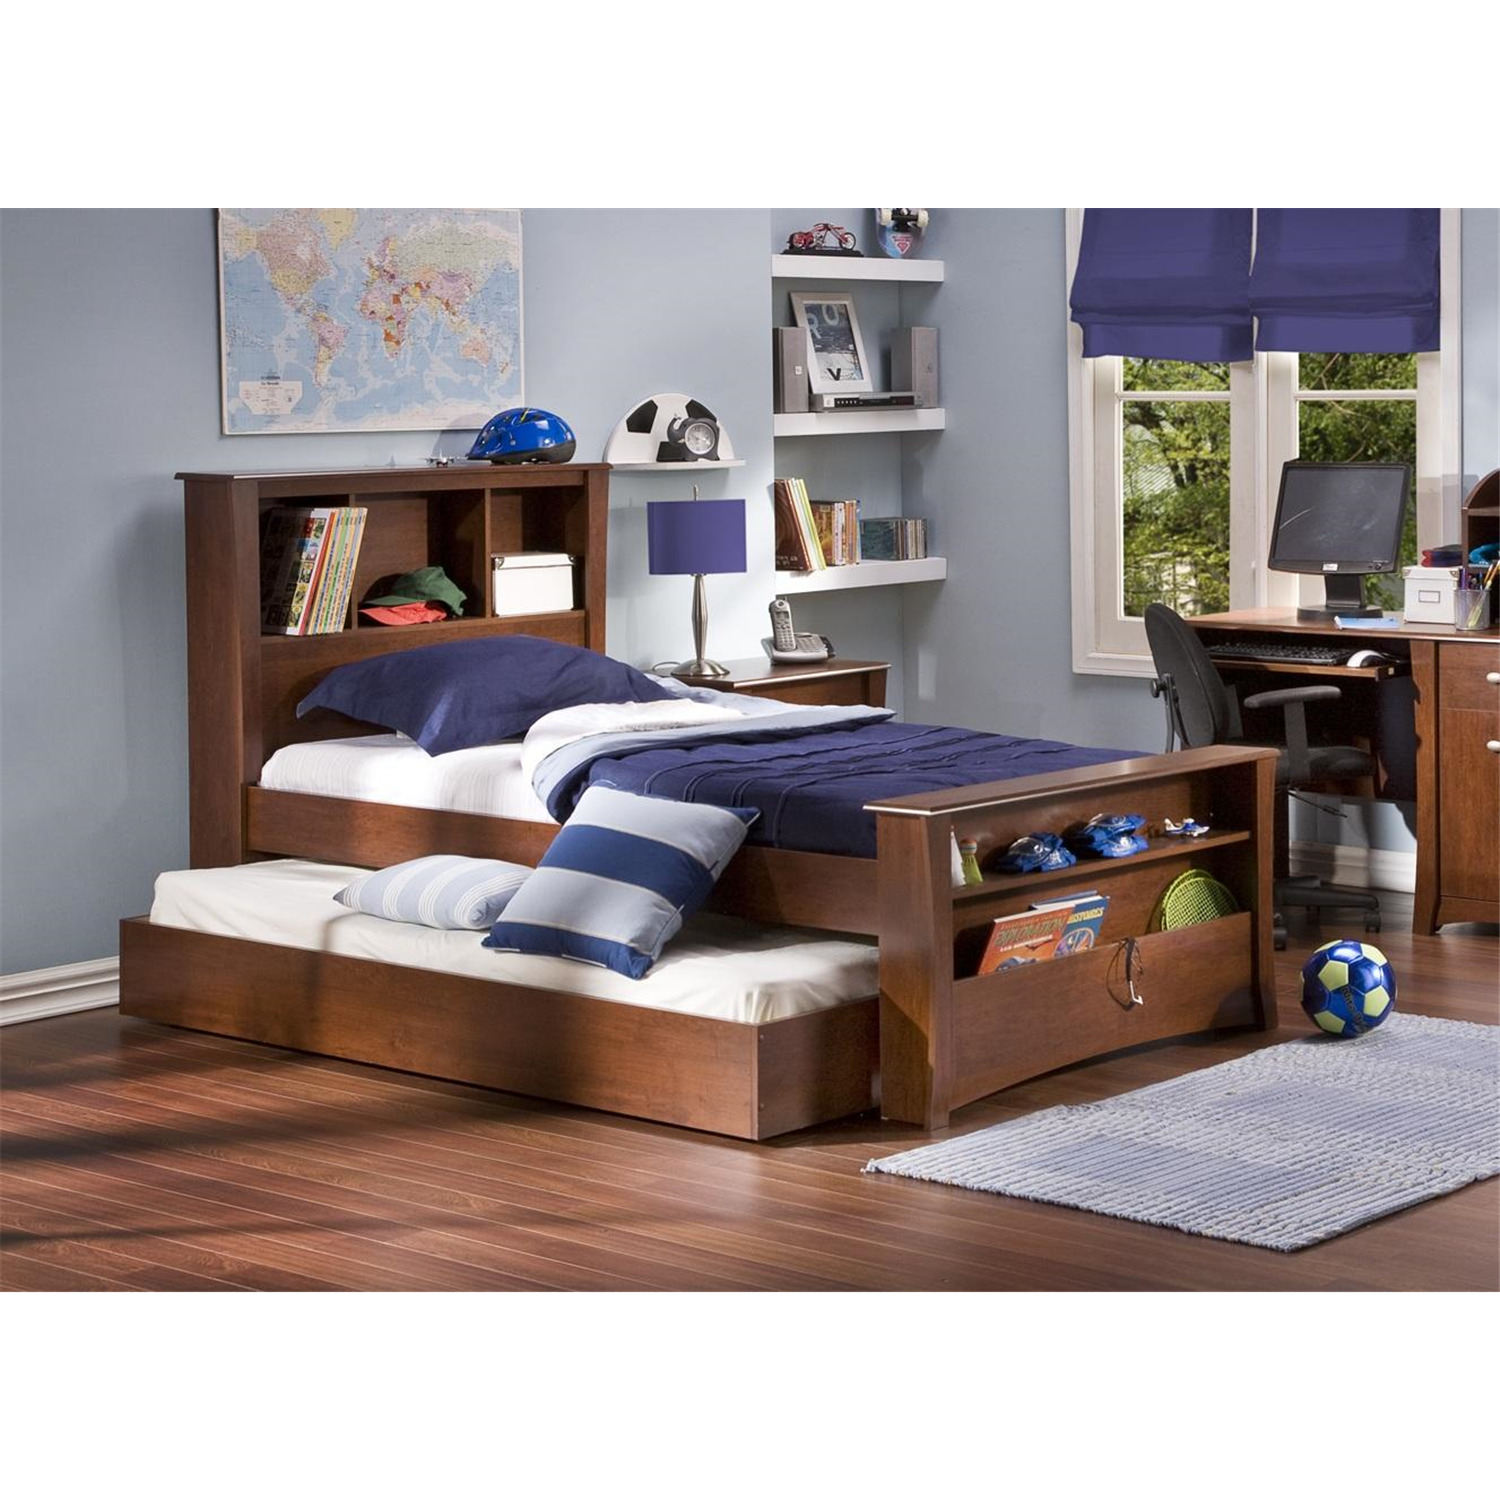 Adult Twin Bed